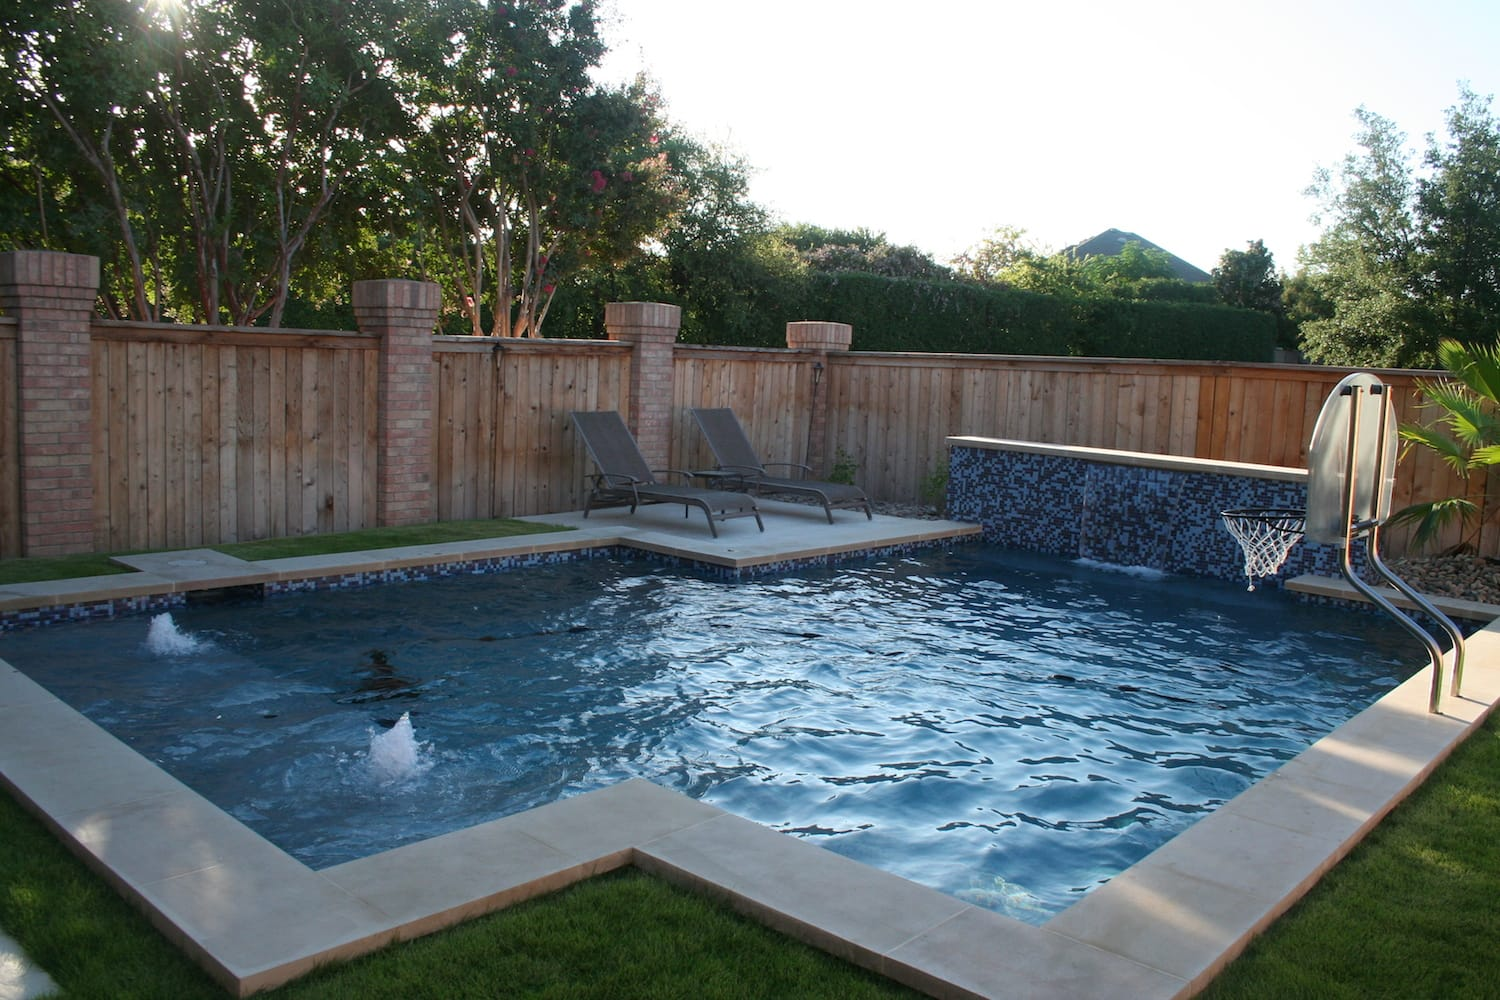 satin-matrix-antigua-pool-finish-20